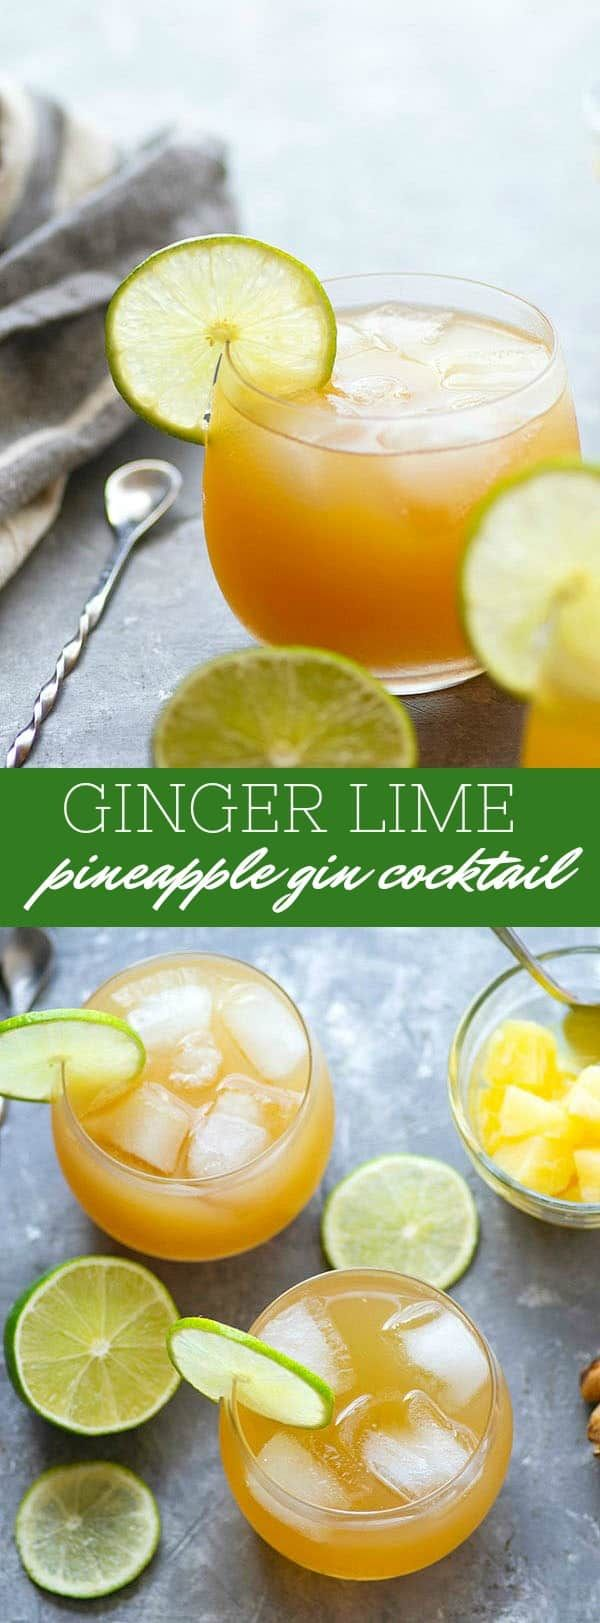 Ginger Lime Pineapple Gin Cocktail Recipe In 2021 Gin Cocktails Cocktail Recipes Easy Sweet And Spicy